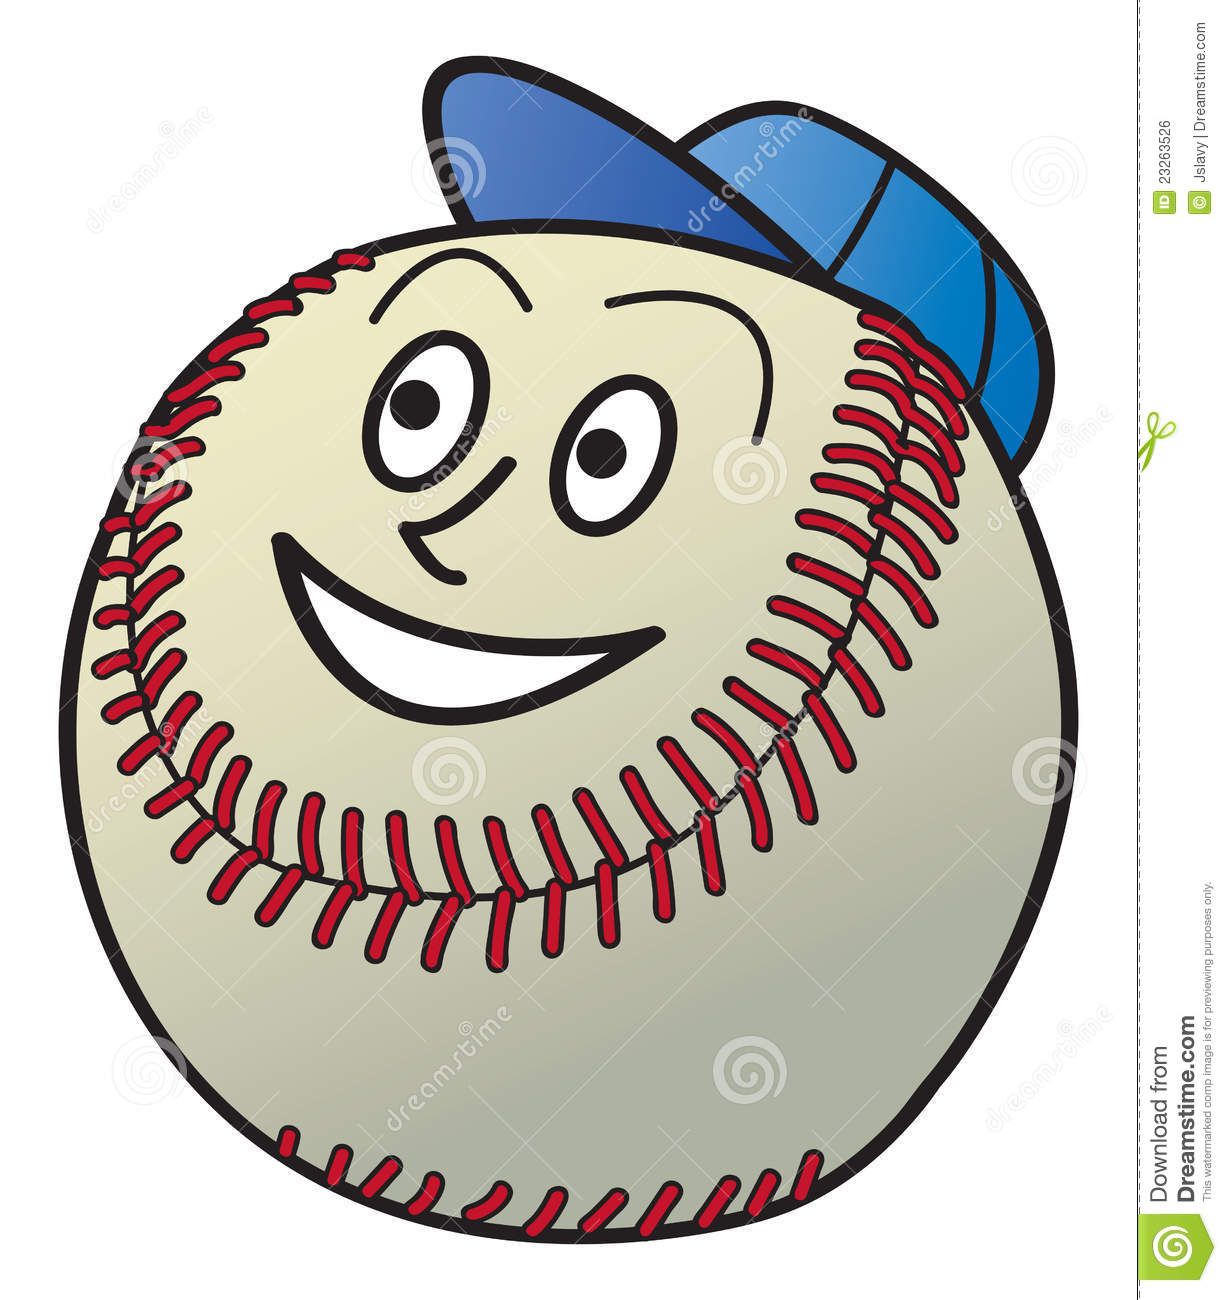 Cartoon Baseball Royalty Free Stock Image - Image: 23263526